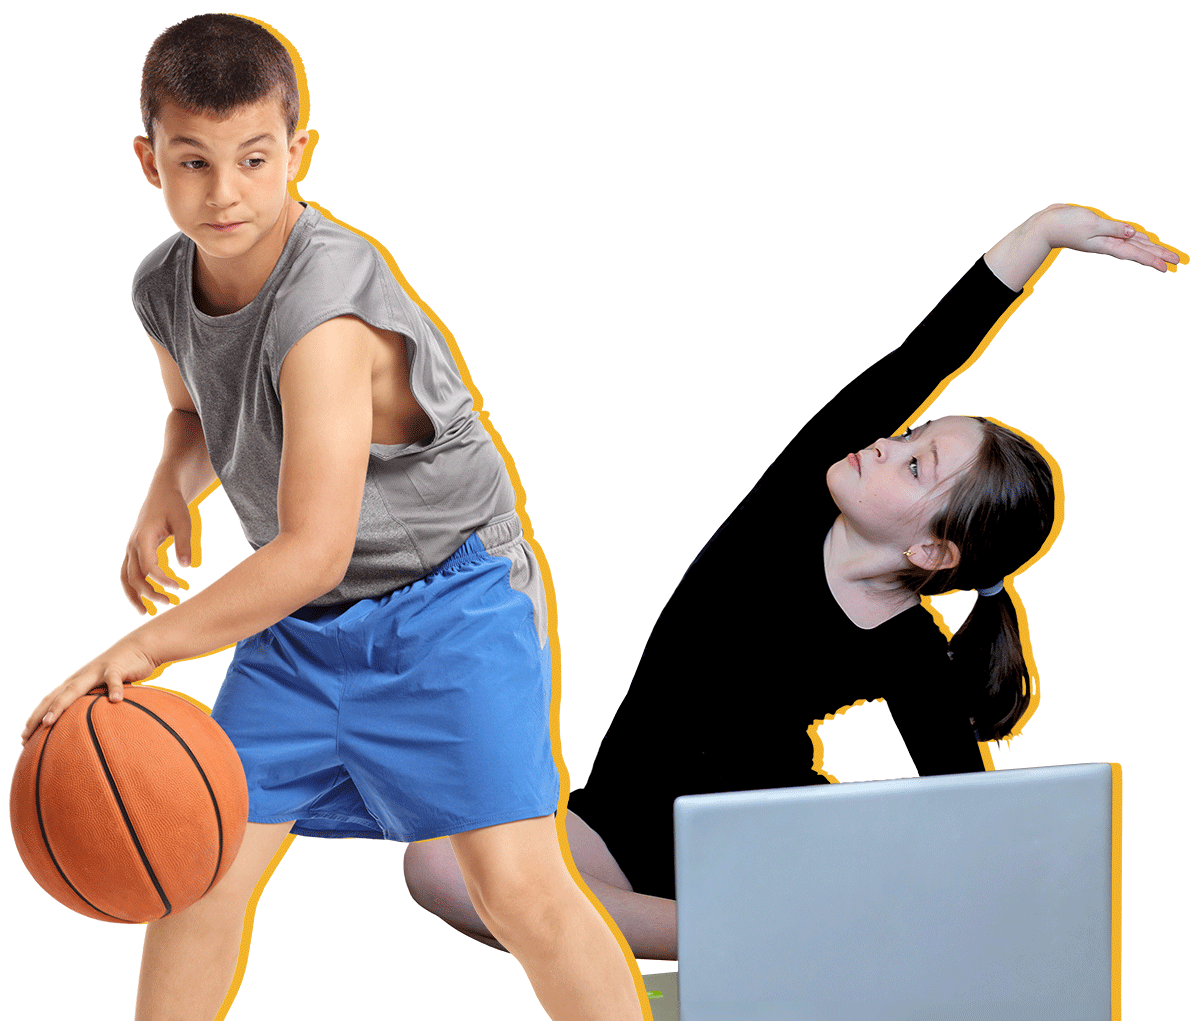 Basketball Boy Dance Girl